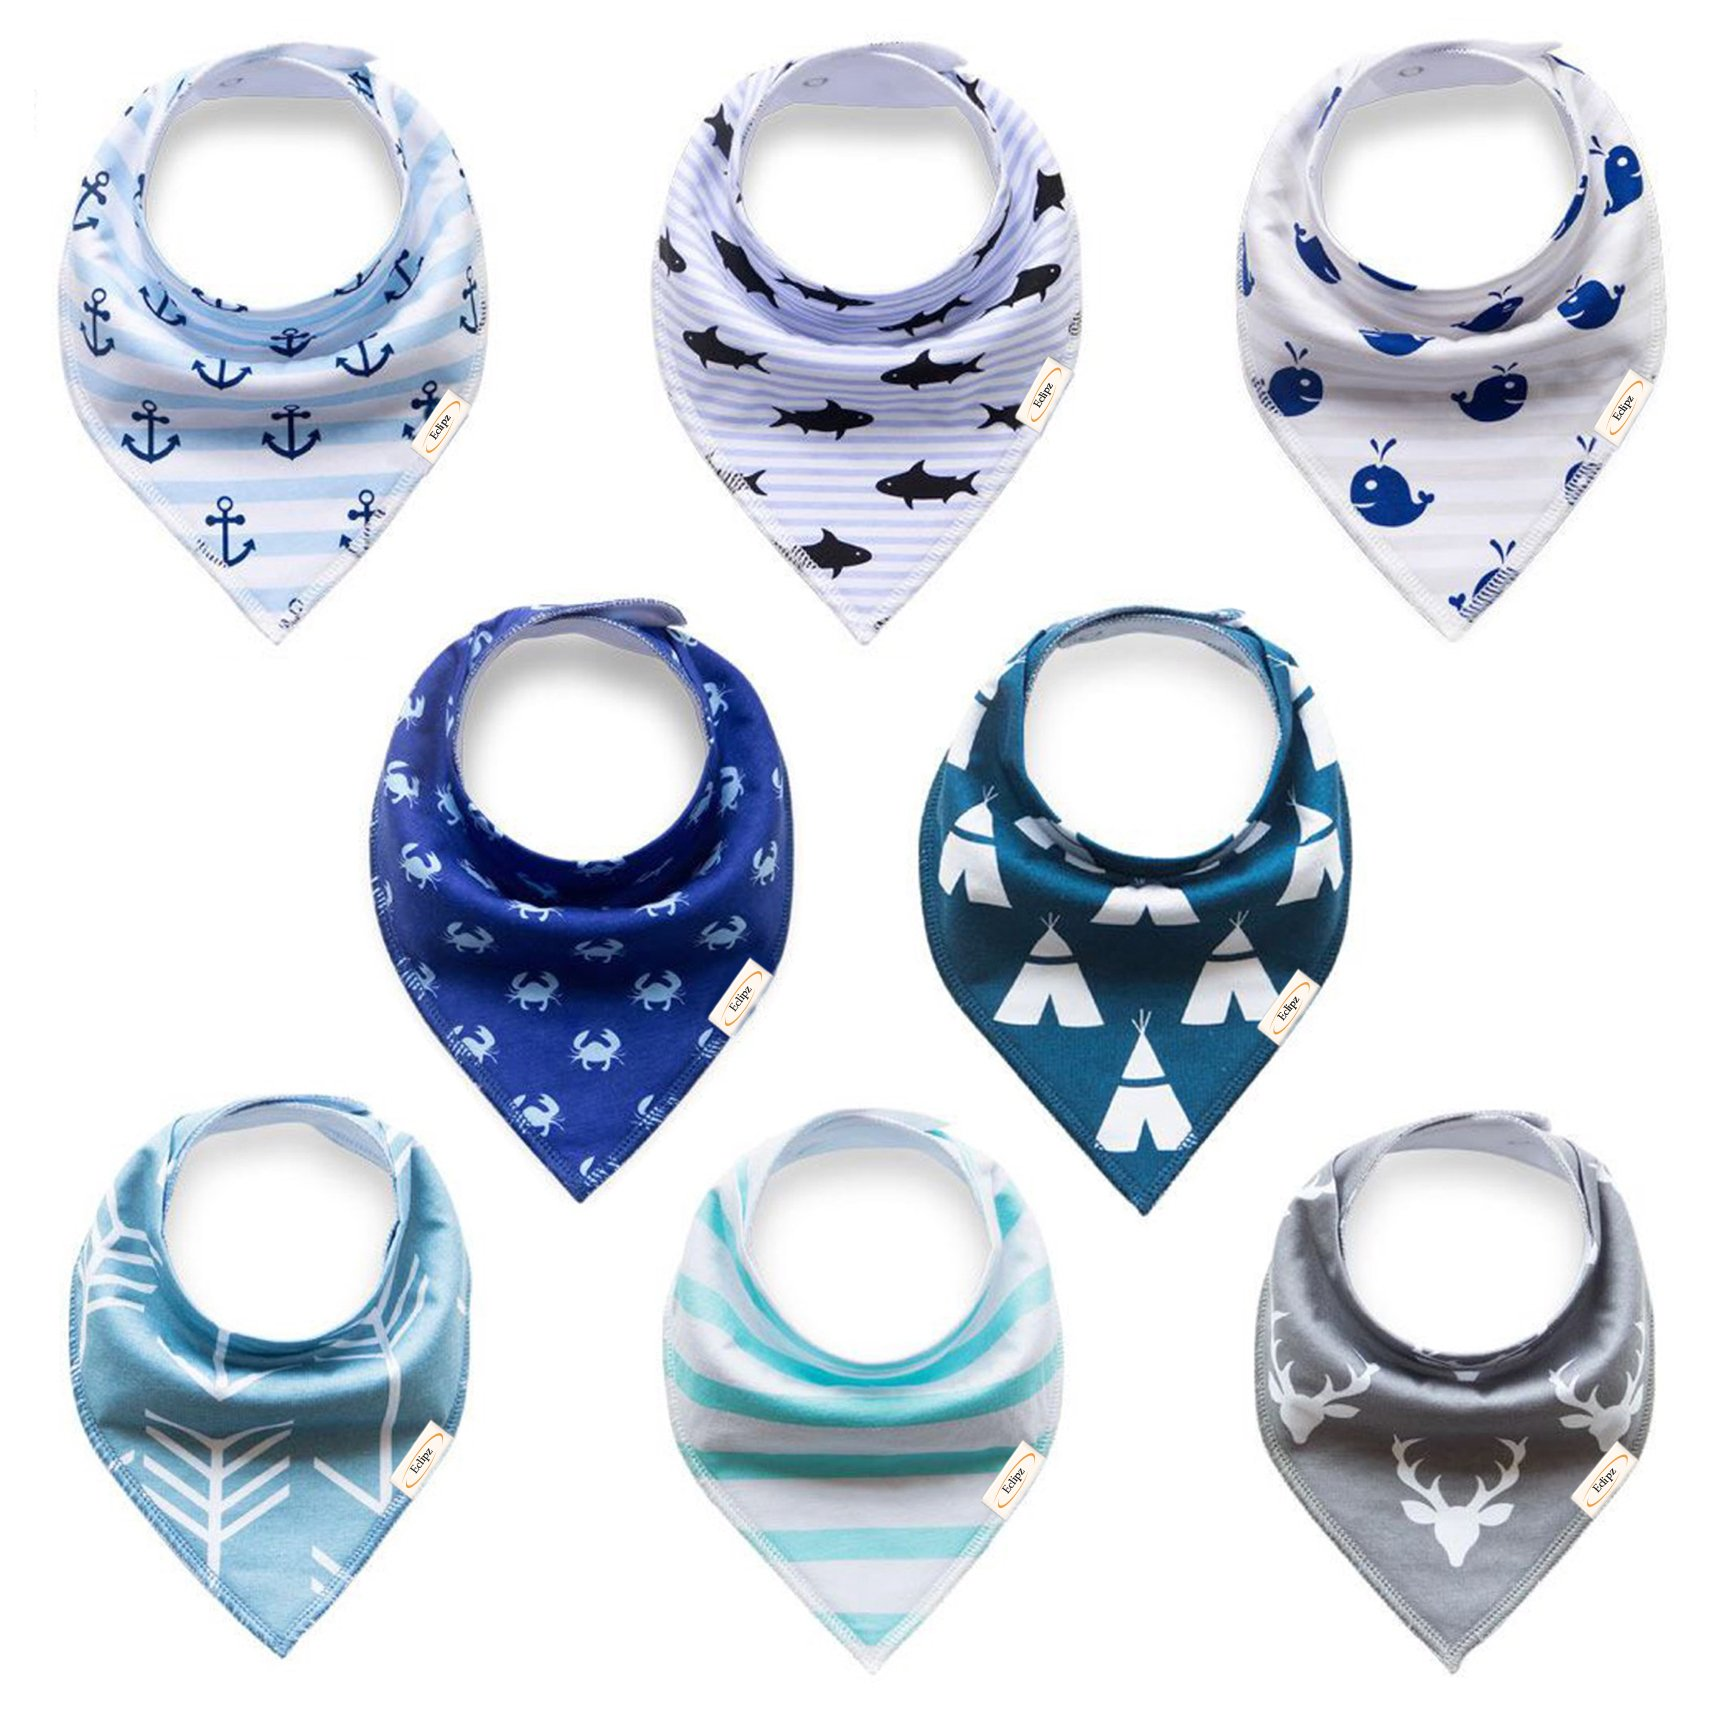 Baby Bandana Drool Bibs For Boys For Drooling, Teething and Feeding, Pack of 8 - 100% Organic Cotton Toddler Bibs With Snaps Super Absorbent, Soft, & Modern Design - Unisex Baby Shower/Registry Gift